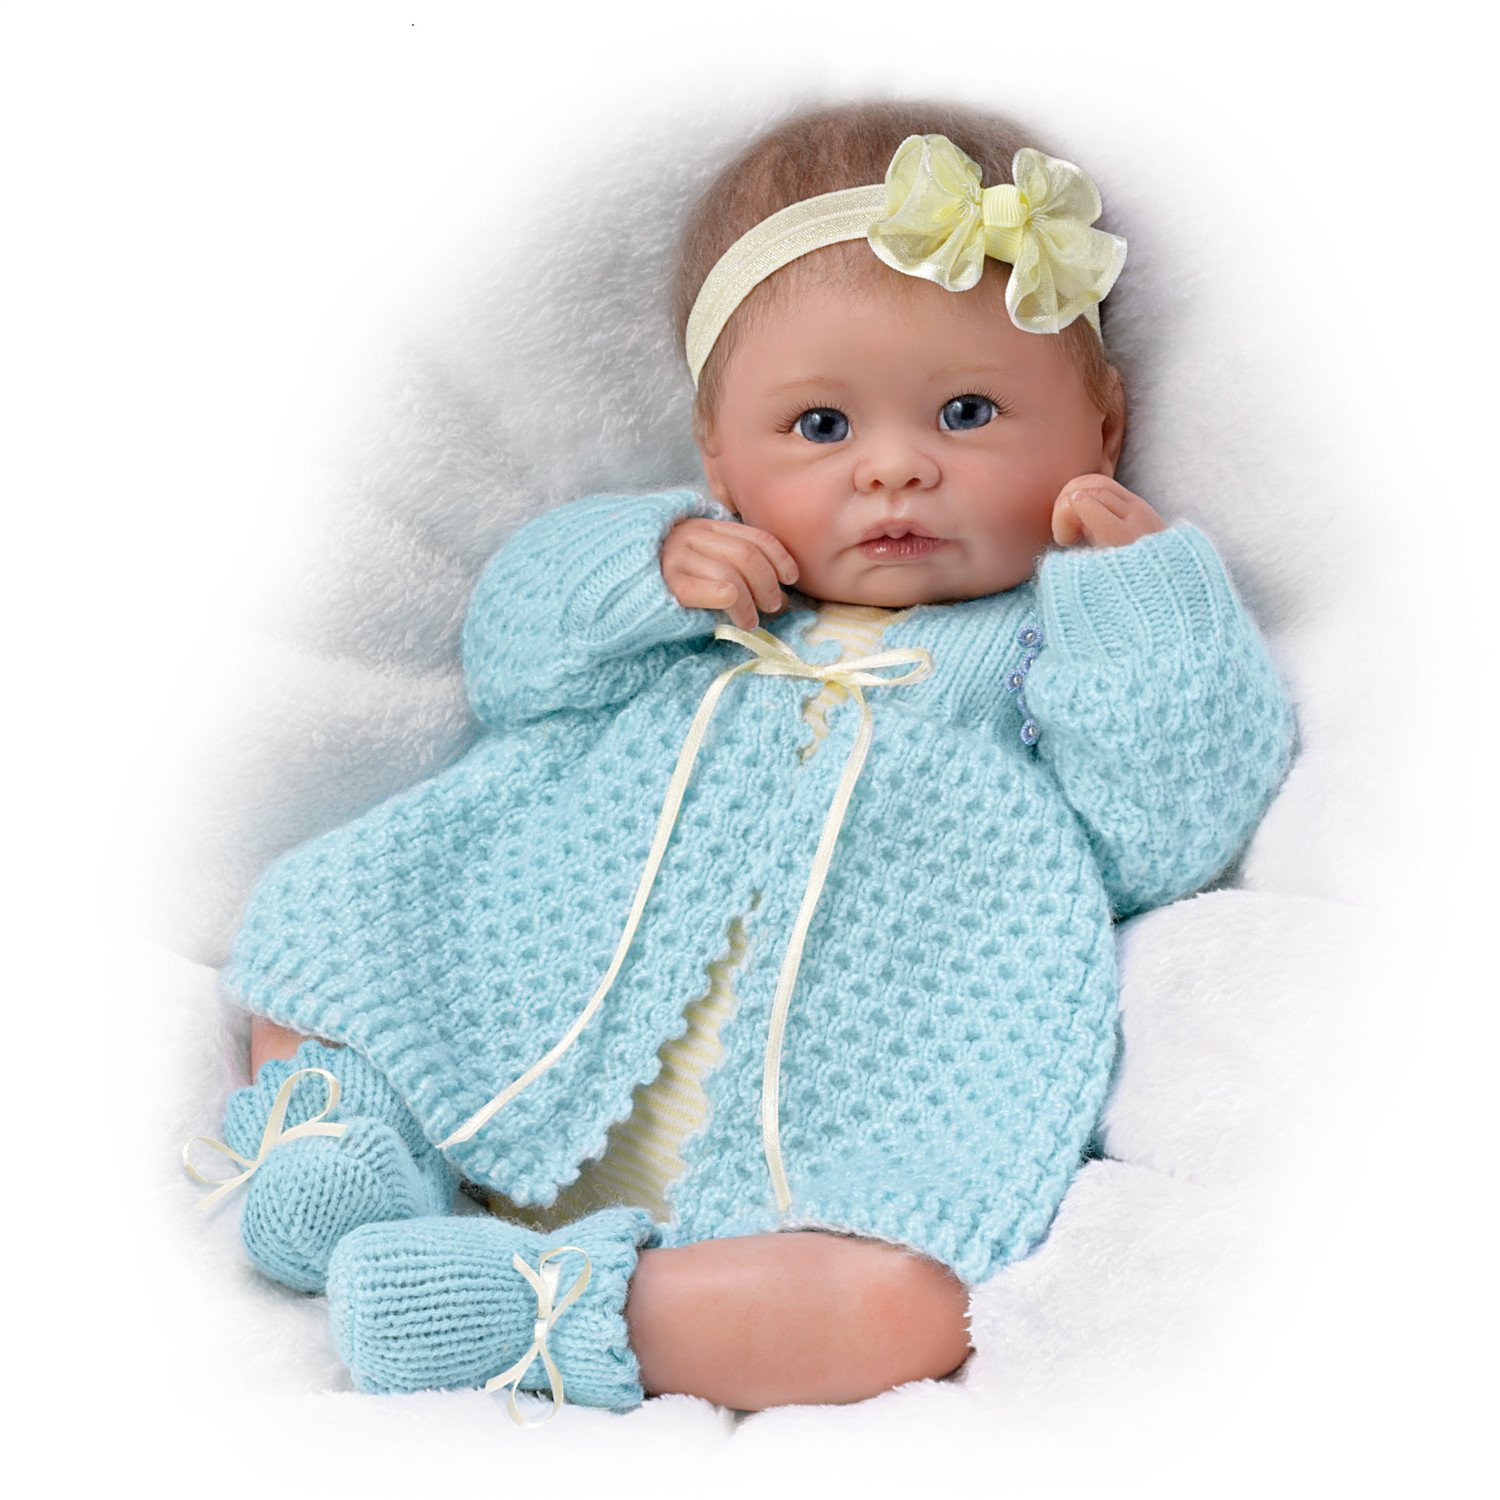 Sweetly Snuggled Sarah  So Truly Real® Lifelike & Realistic Weighted Newborn Baby Doll 16-inches by The Ashton-Drake Galleries